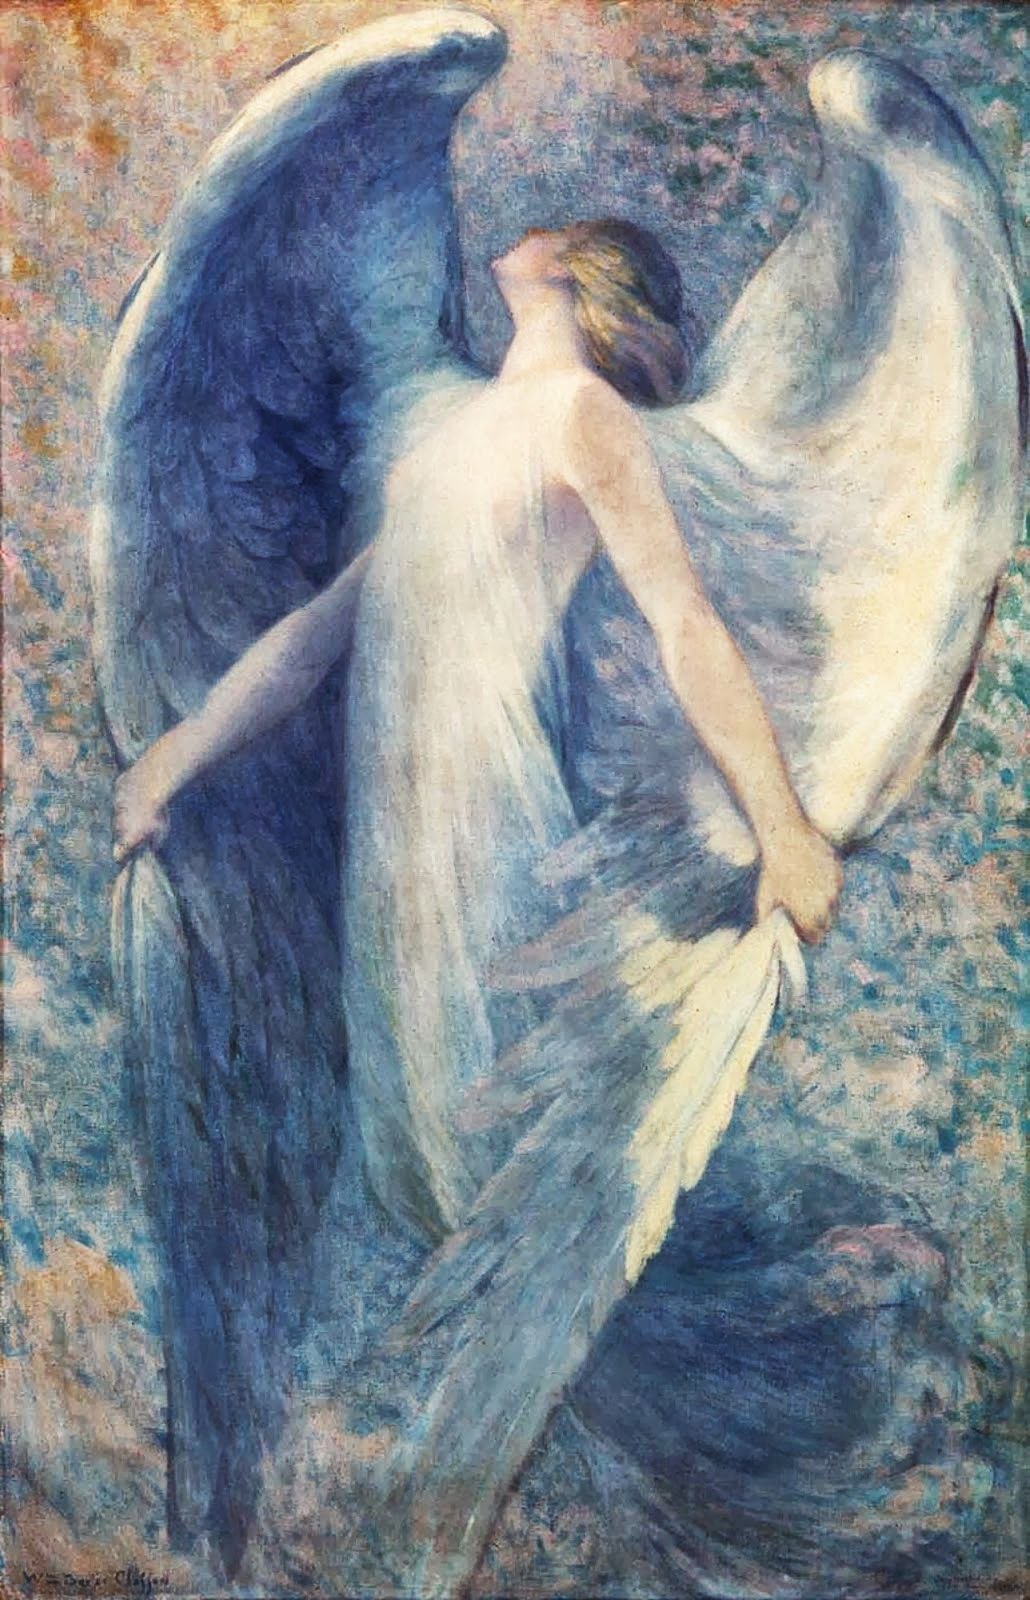 William Baxter Closson (American, 1848-1926). The Angel